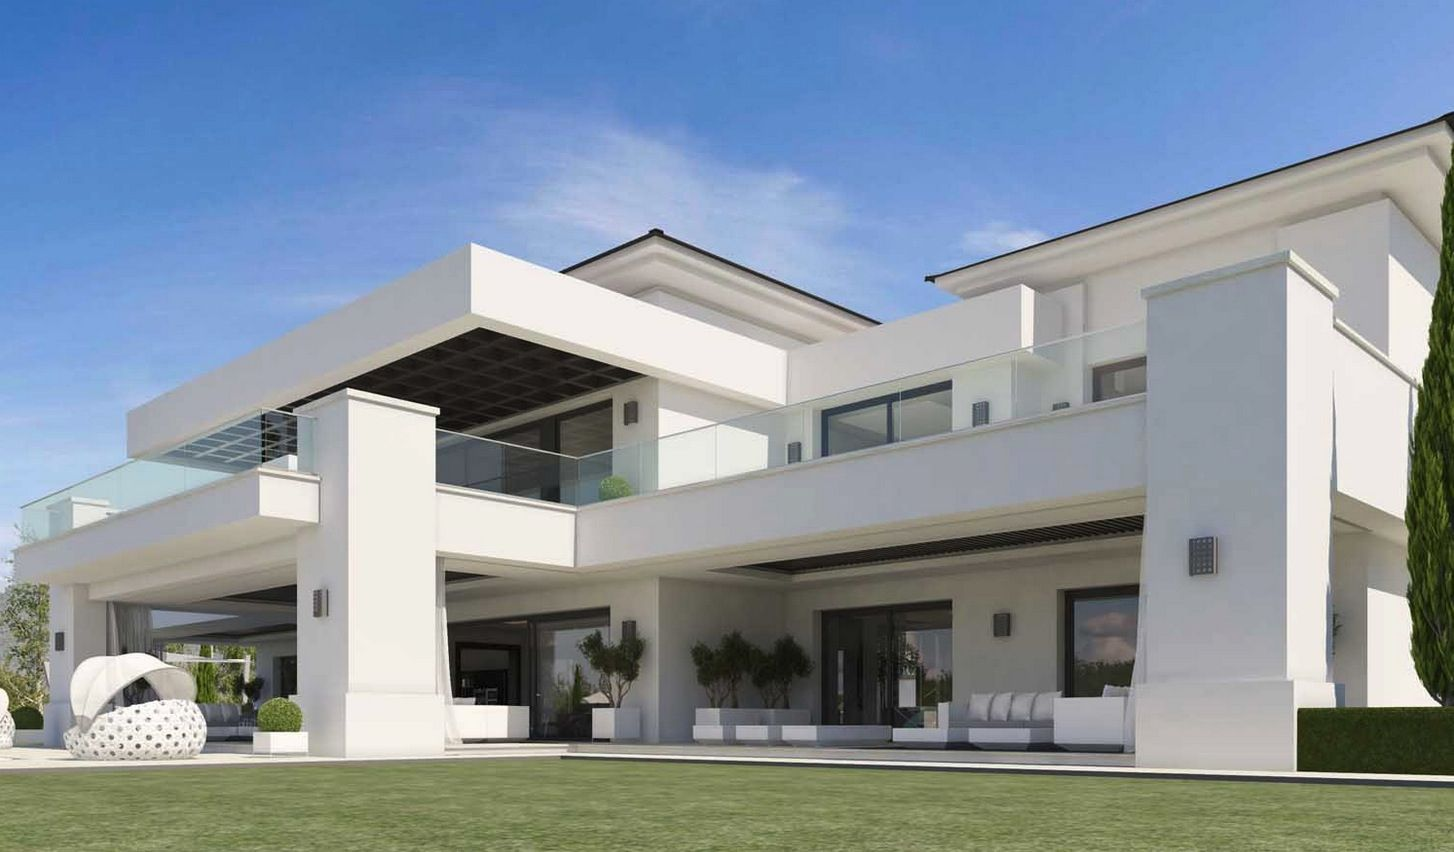 modern villas for sale luxury contemporary villas and real estate in marbella cannes vilamoura dubai architectural delights pinterest cannes